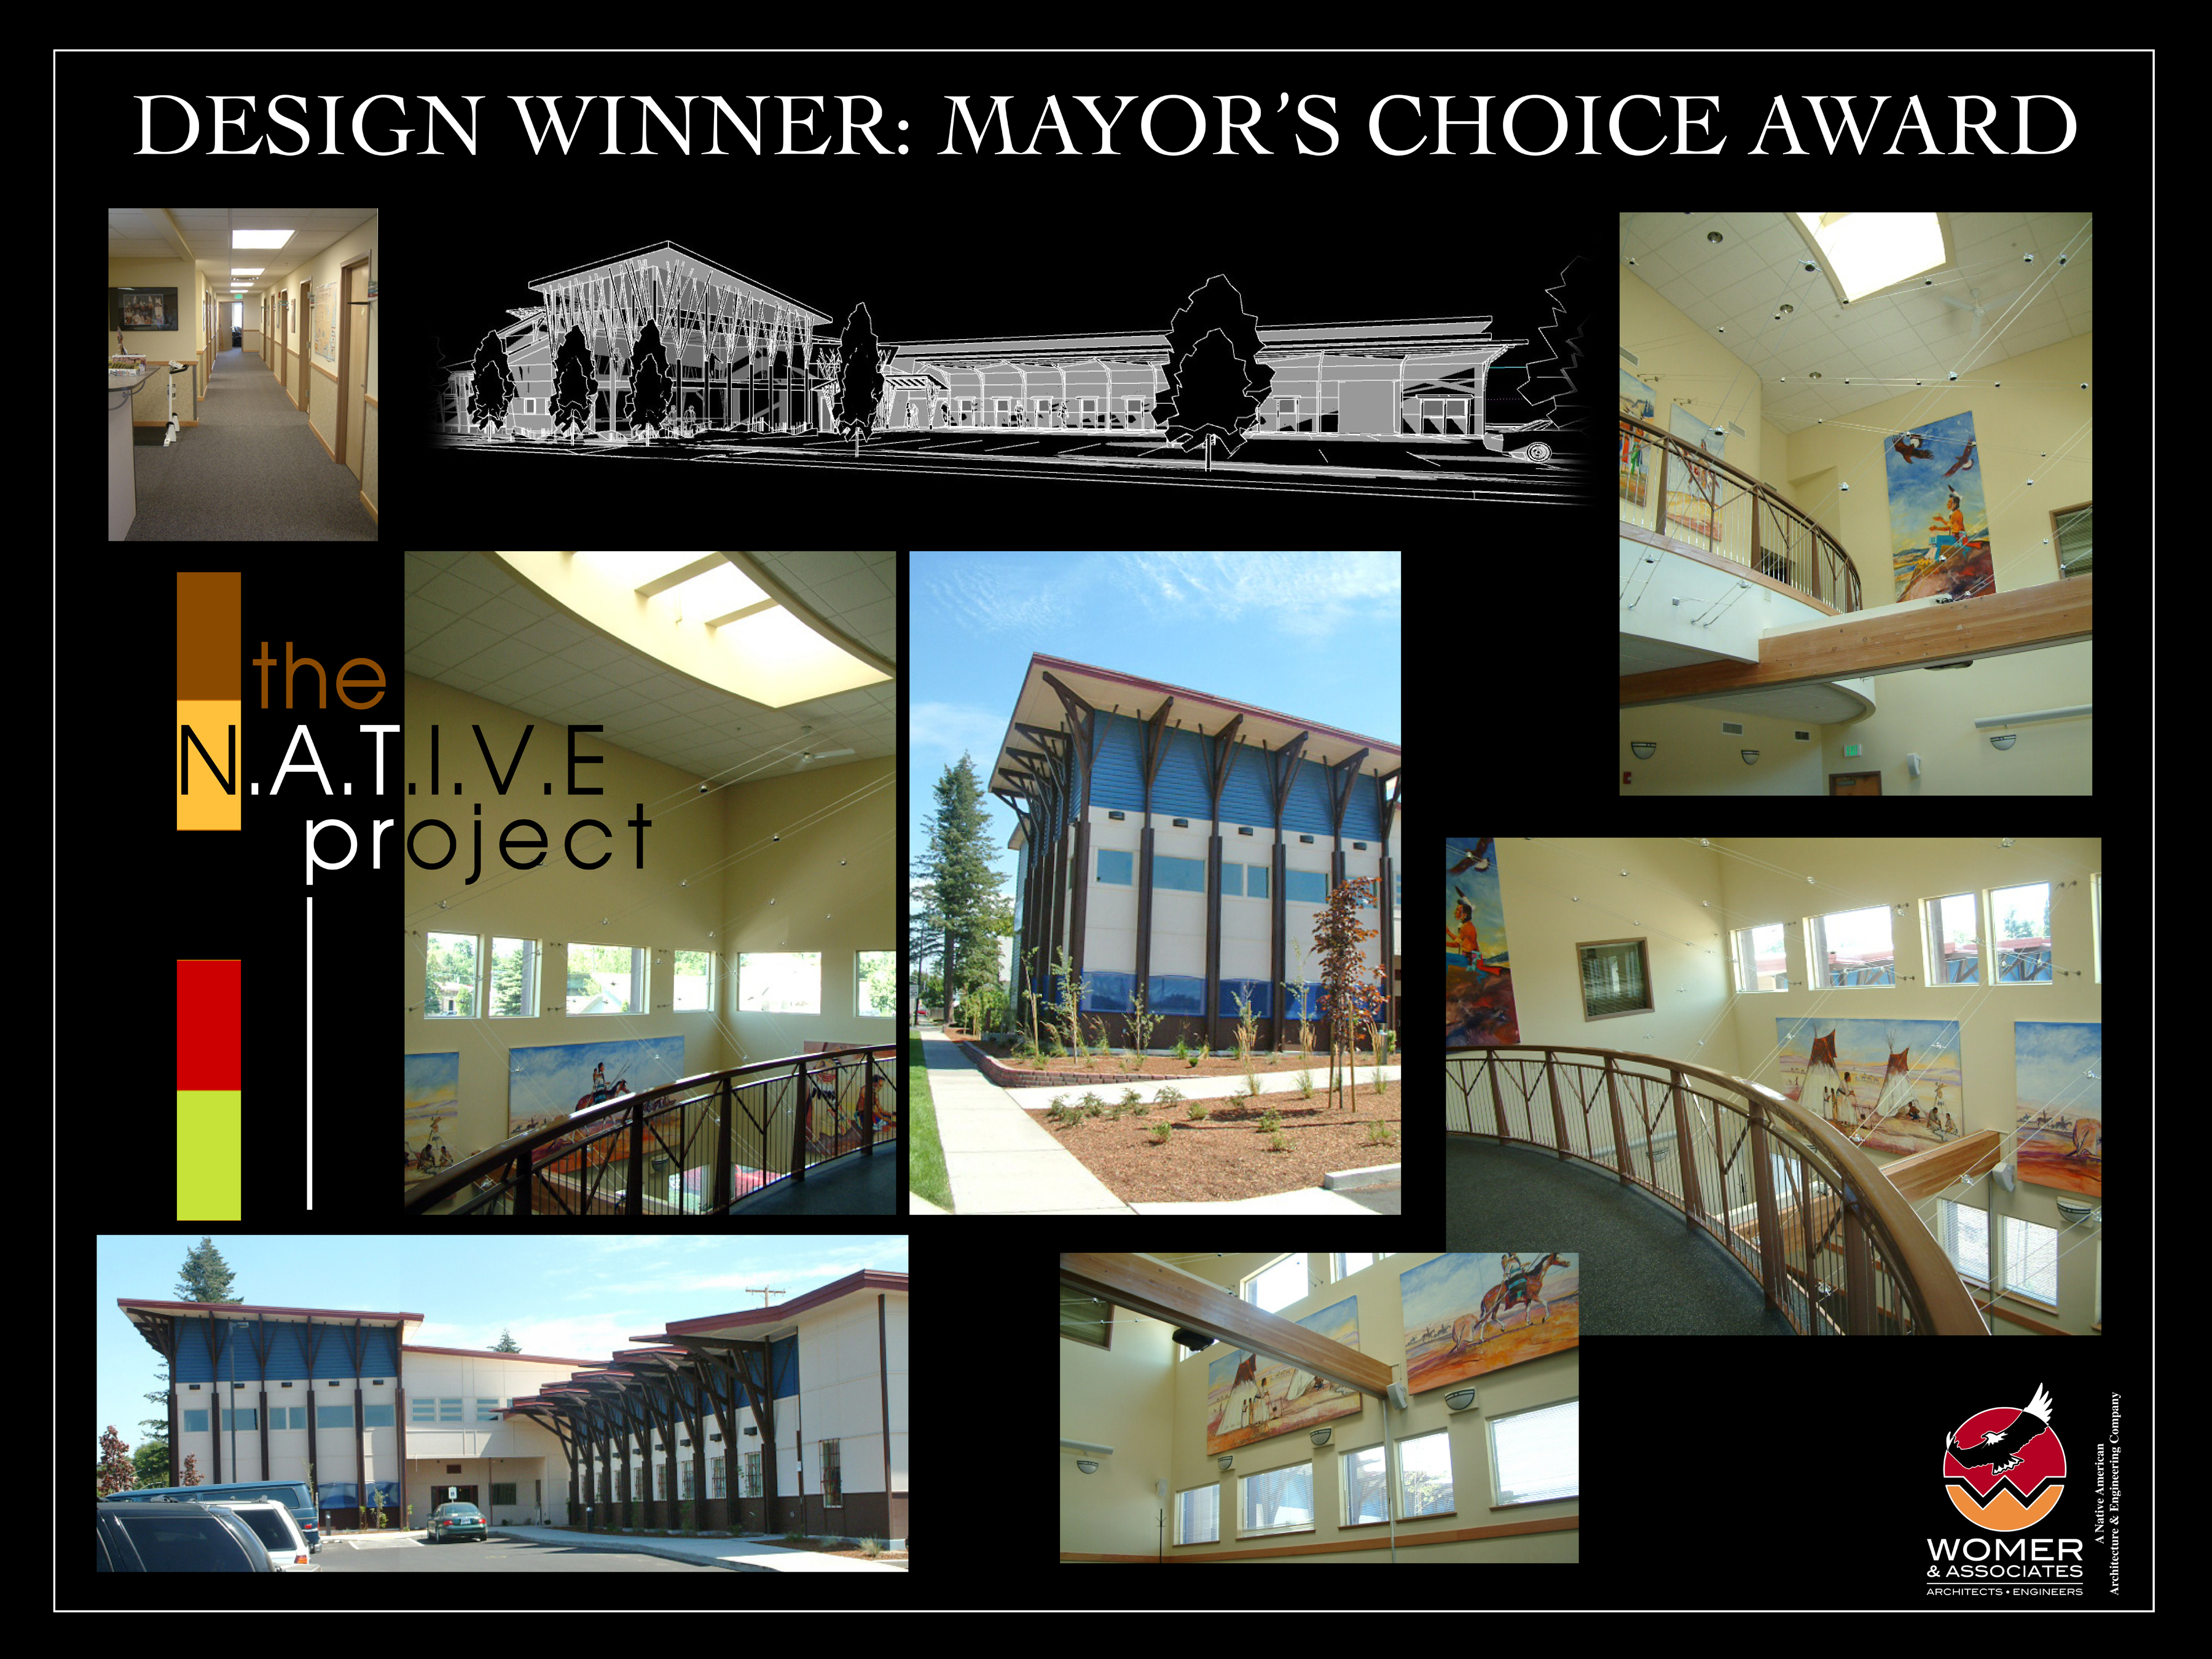 The NATIVE Project Wins Mayors Choice Award